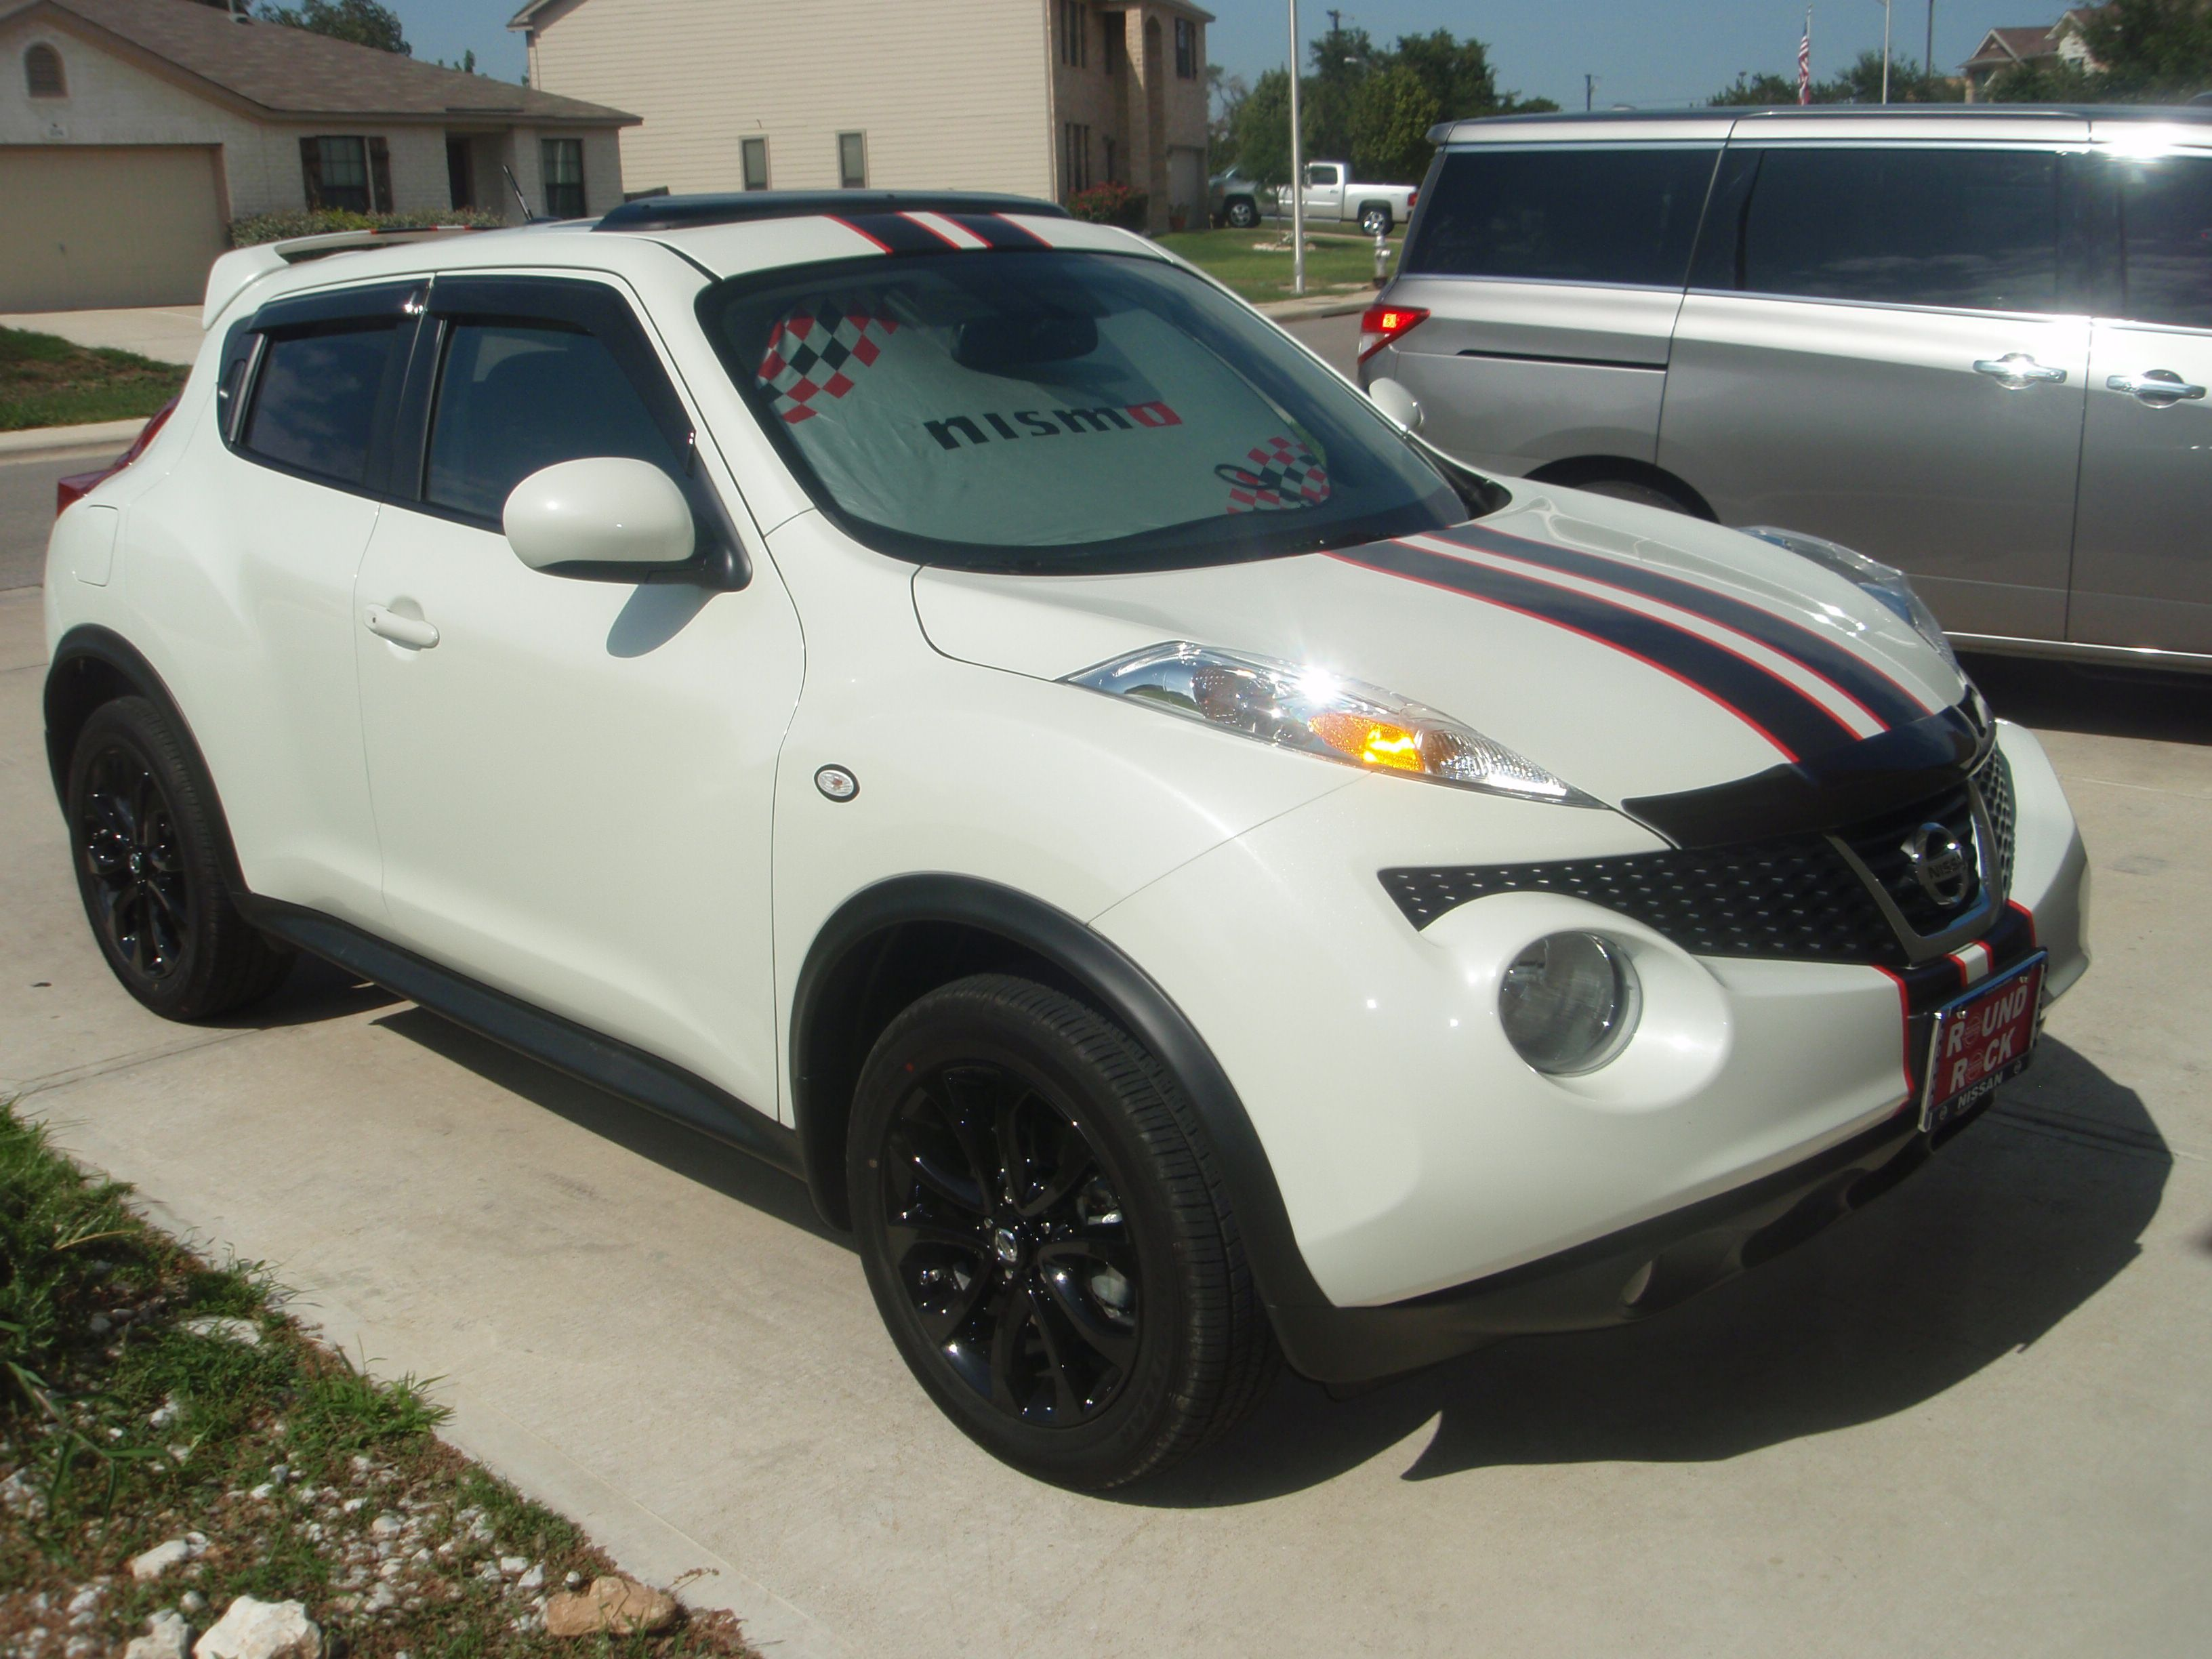 juke studio jukes by speed cars top edition nissan used color stinger